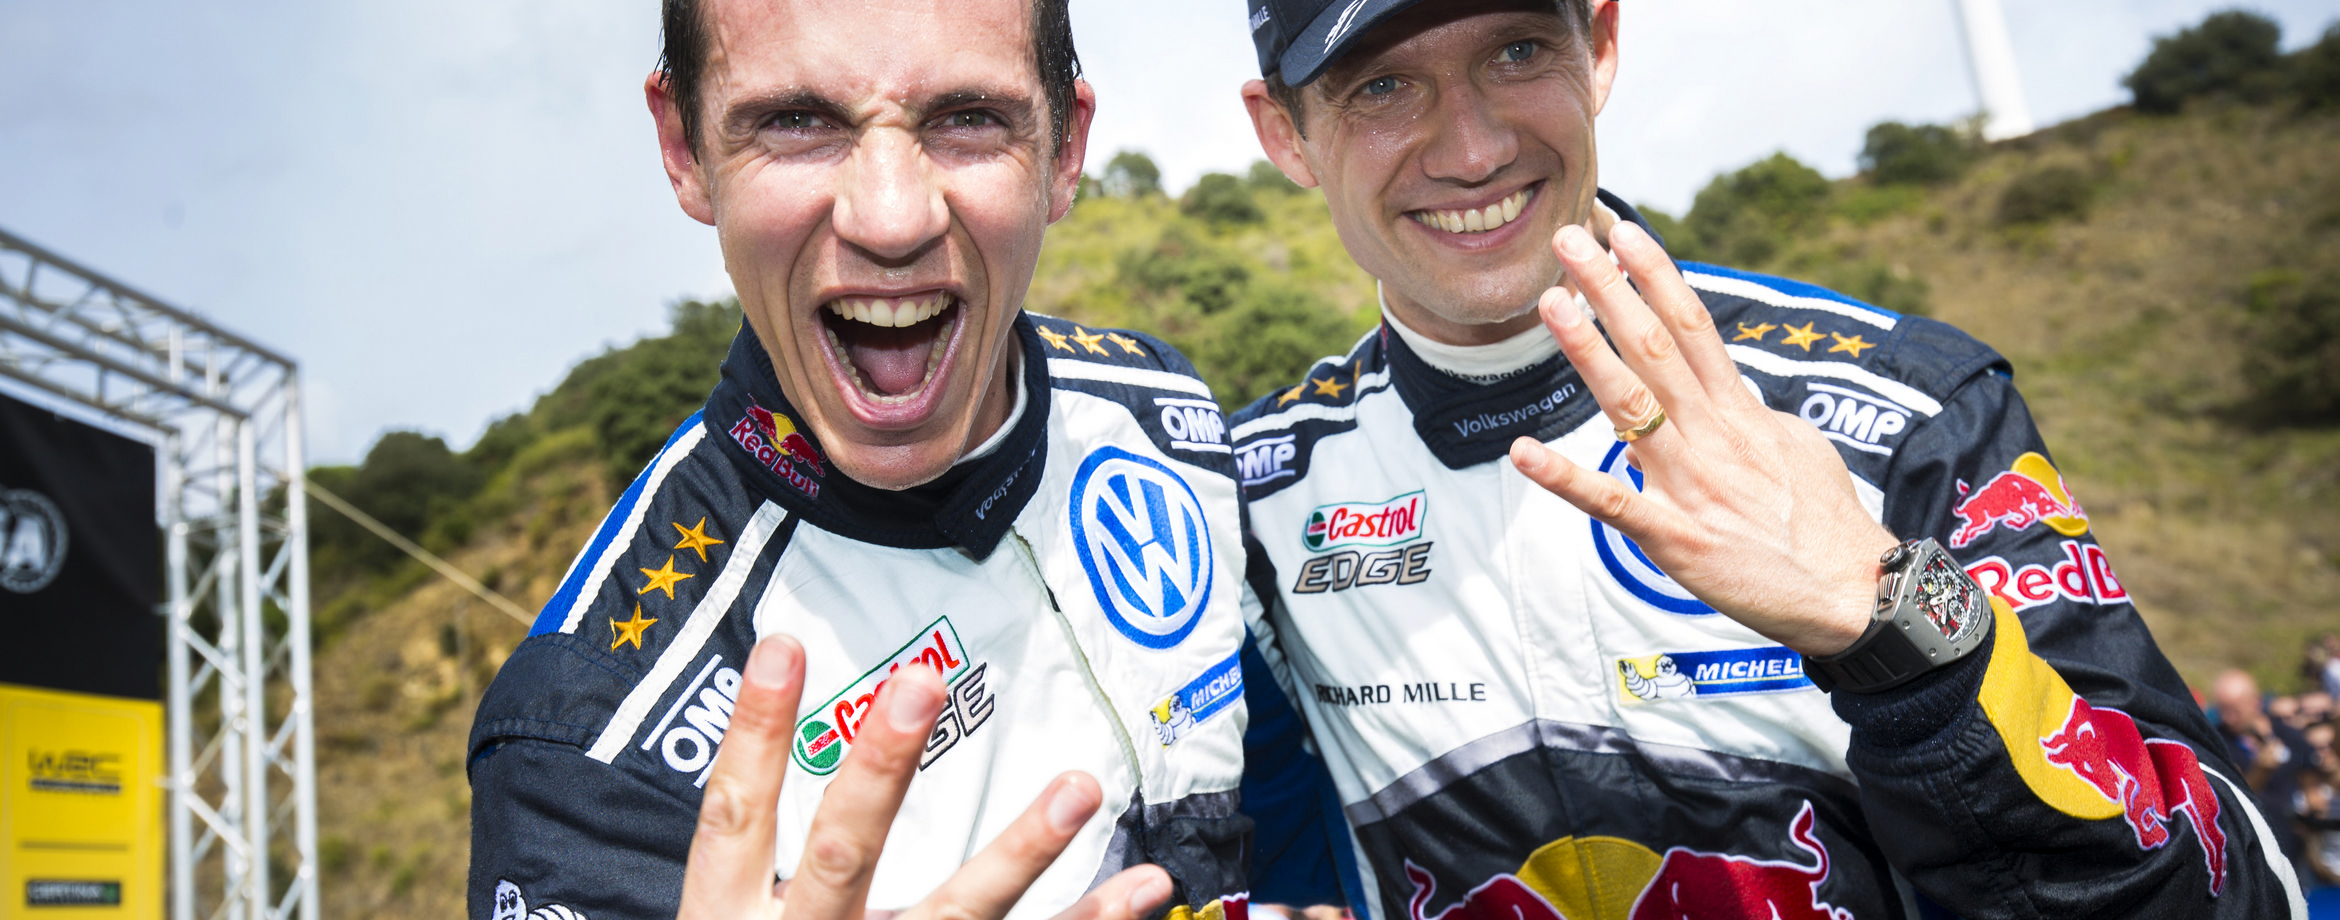 rally drivers celebrate